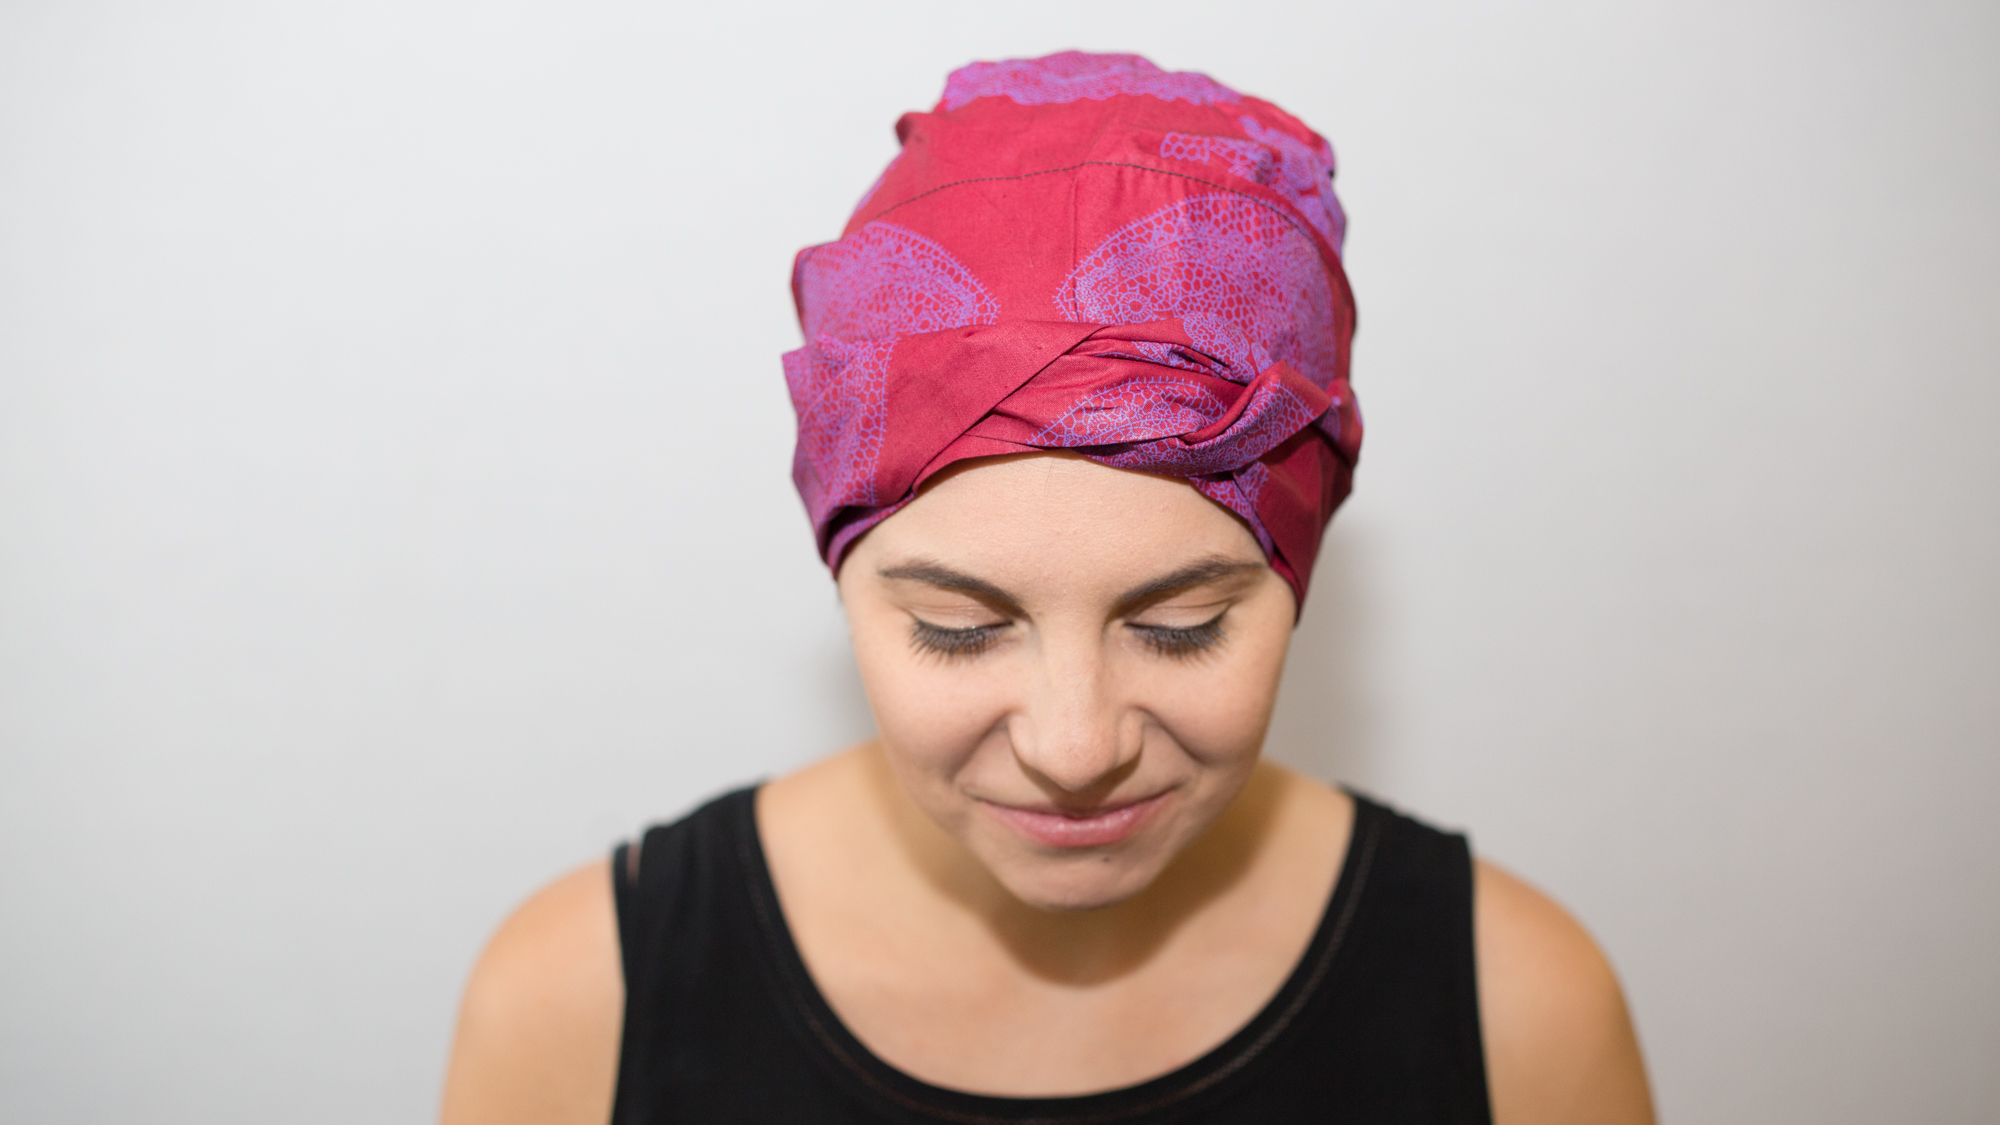 The head wraps have received good reviews. Our patients love the cotton!! - Store Manager at Seattle Cancer Care Alliance